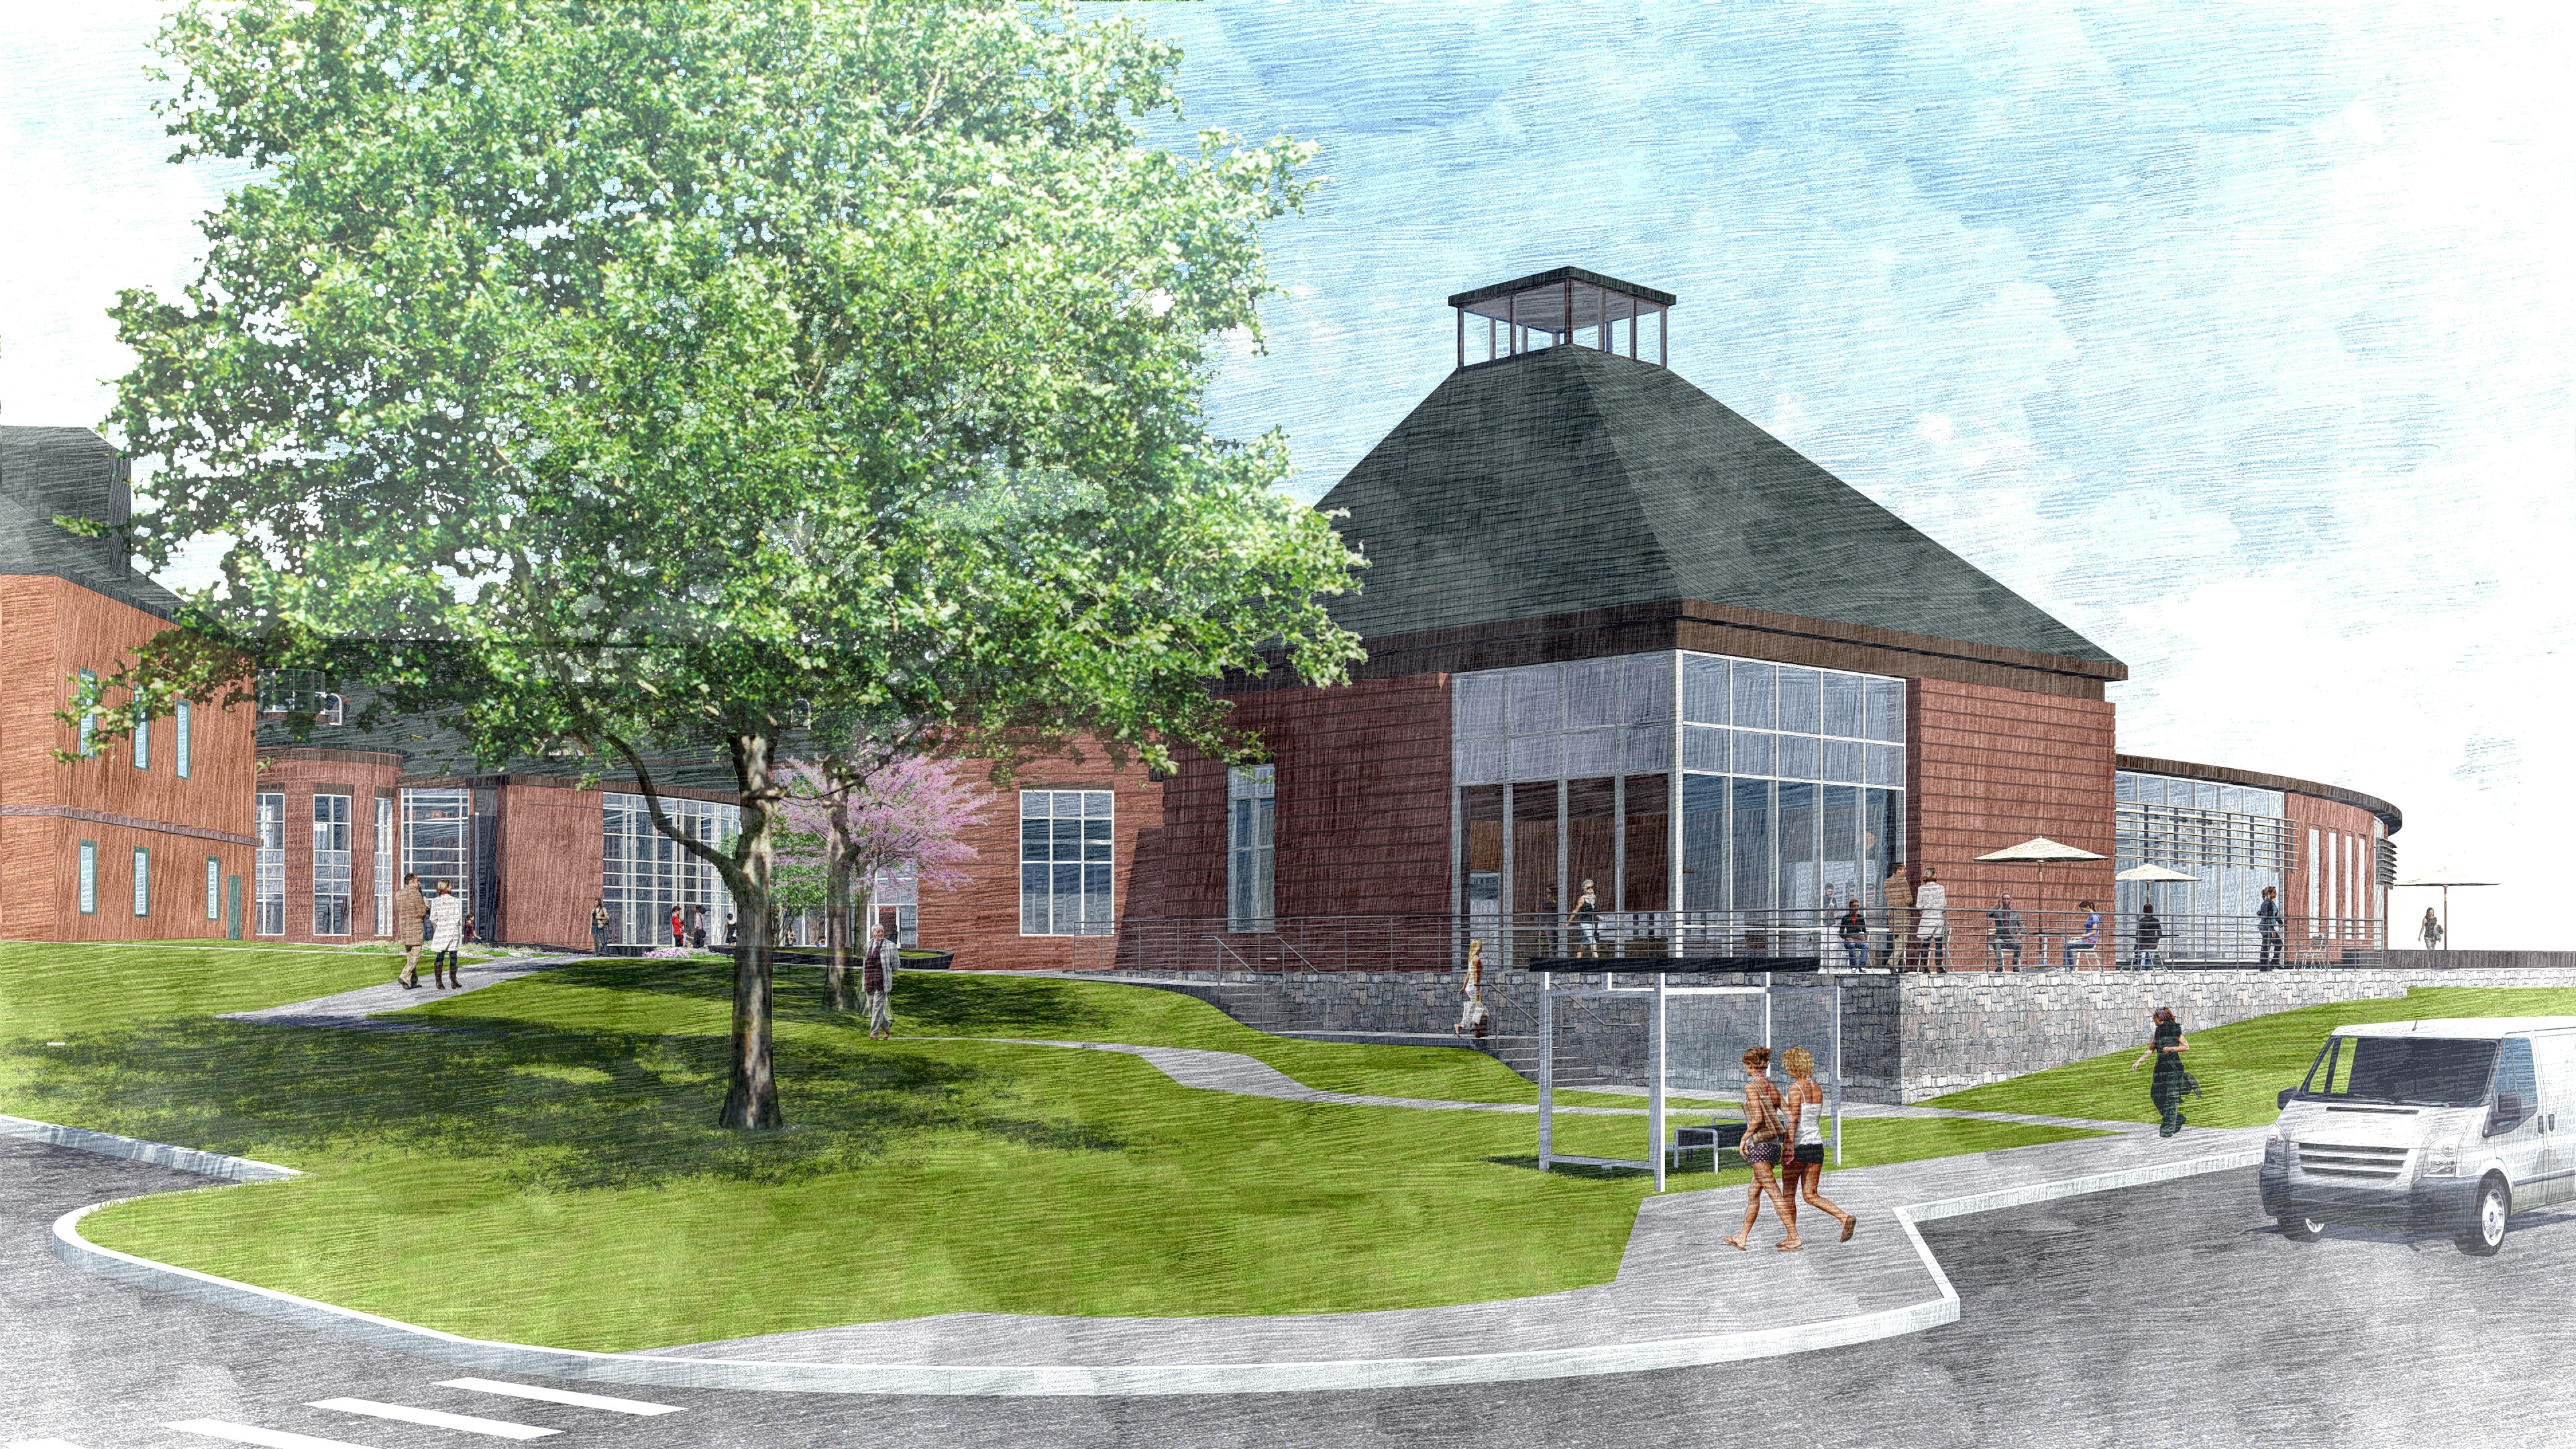 View of the planned Community Center